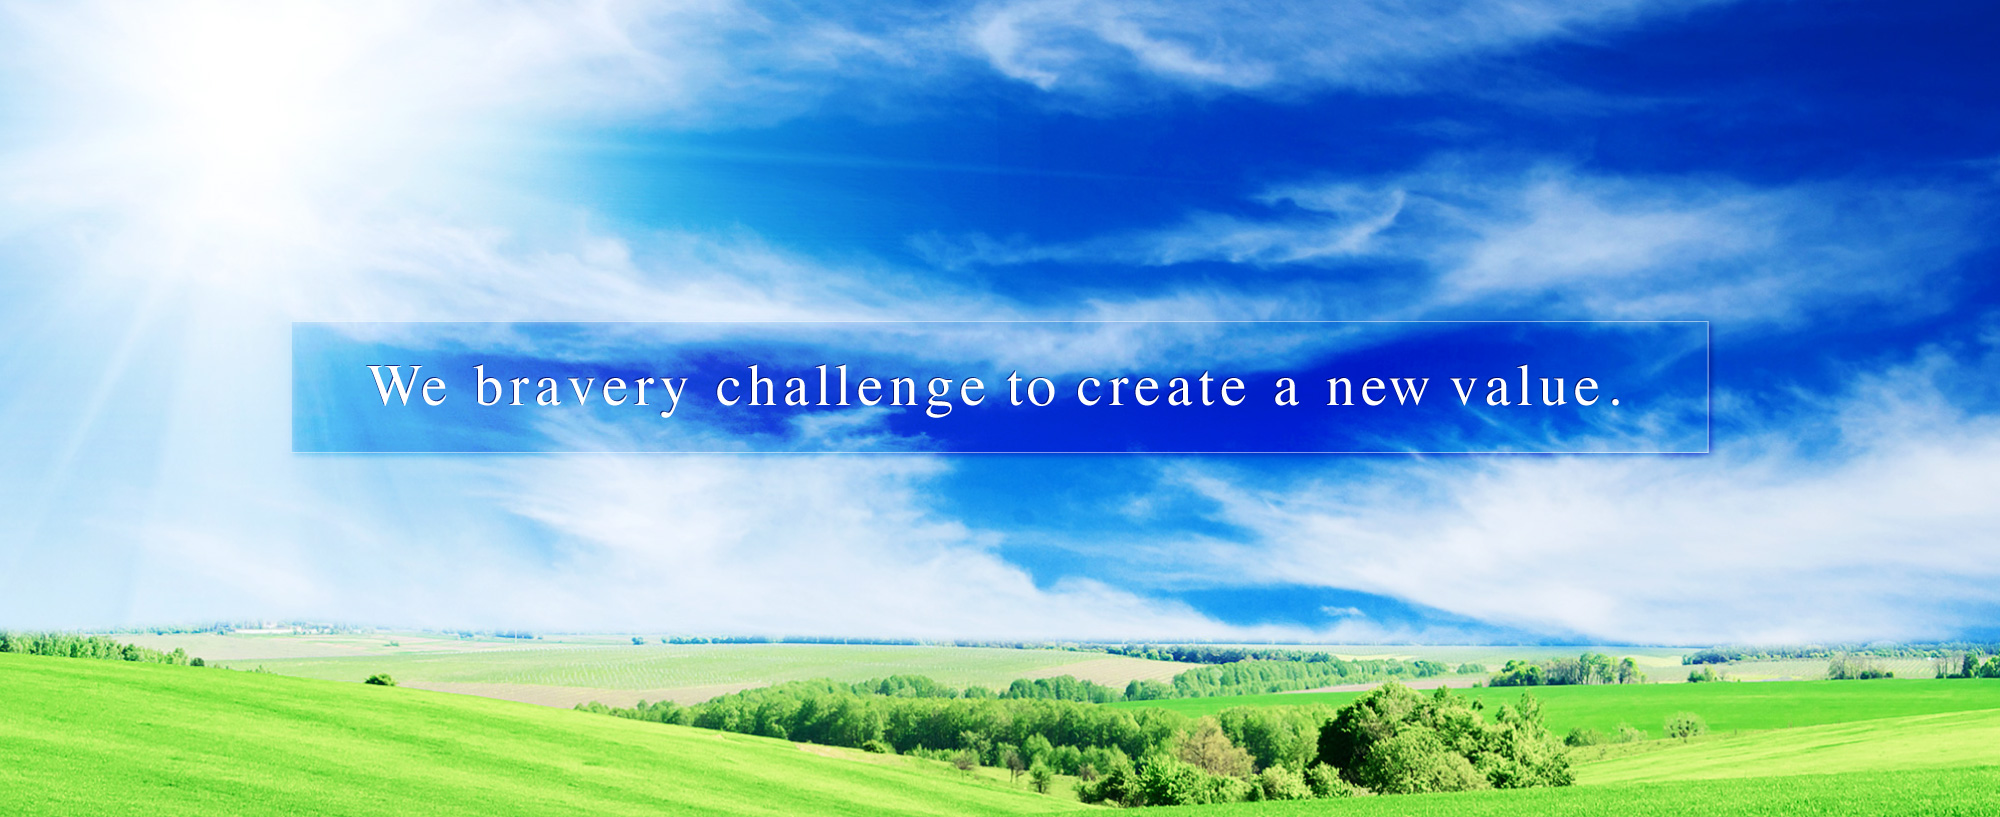 We baravery challenge to create a new value.